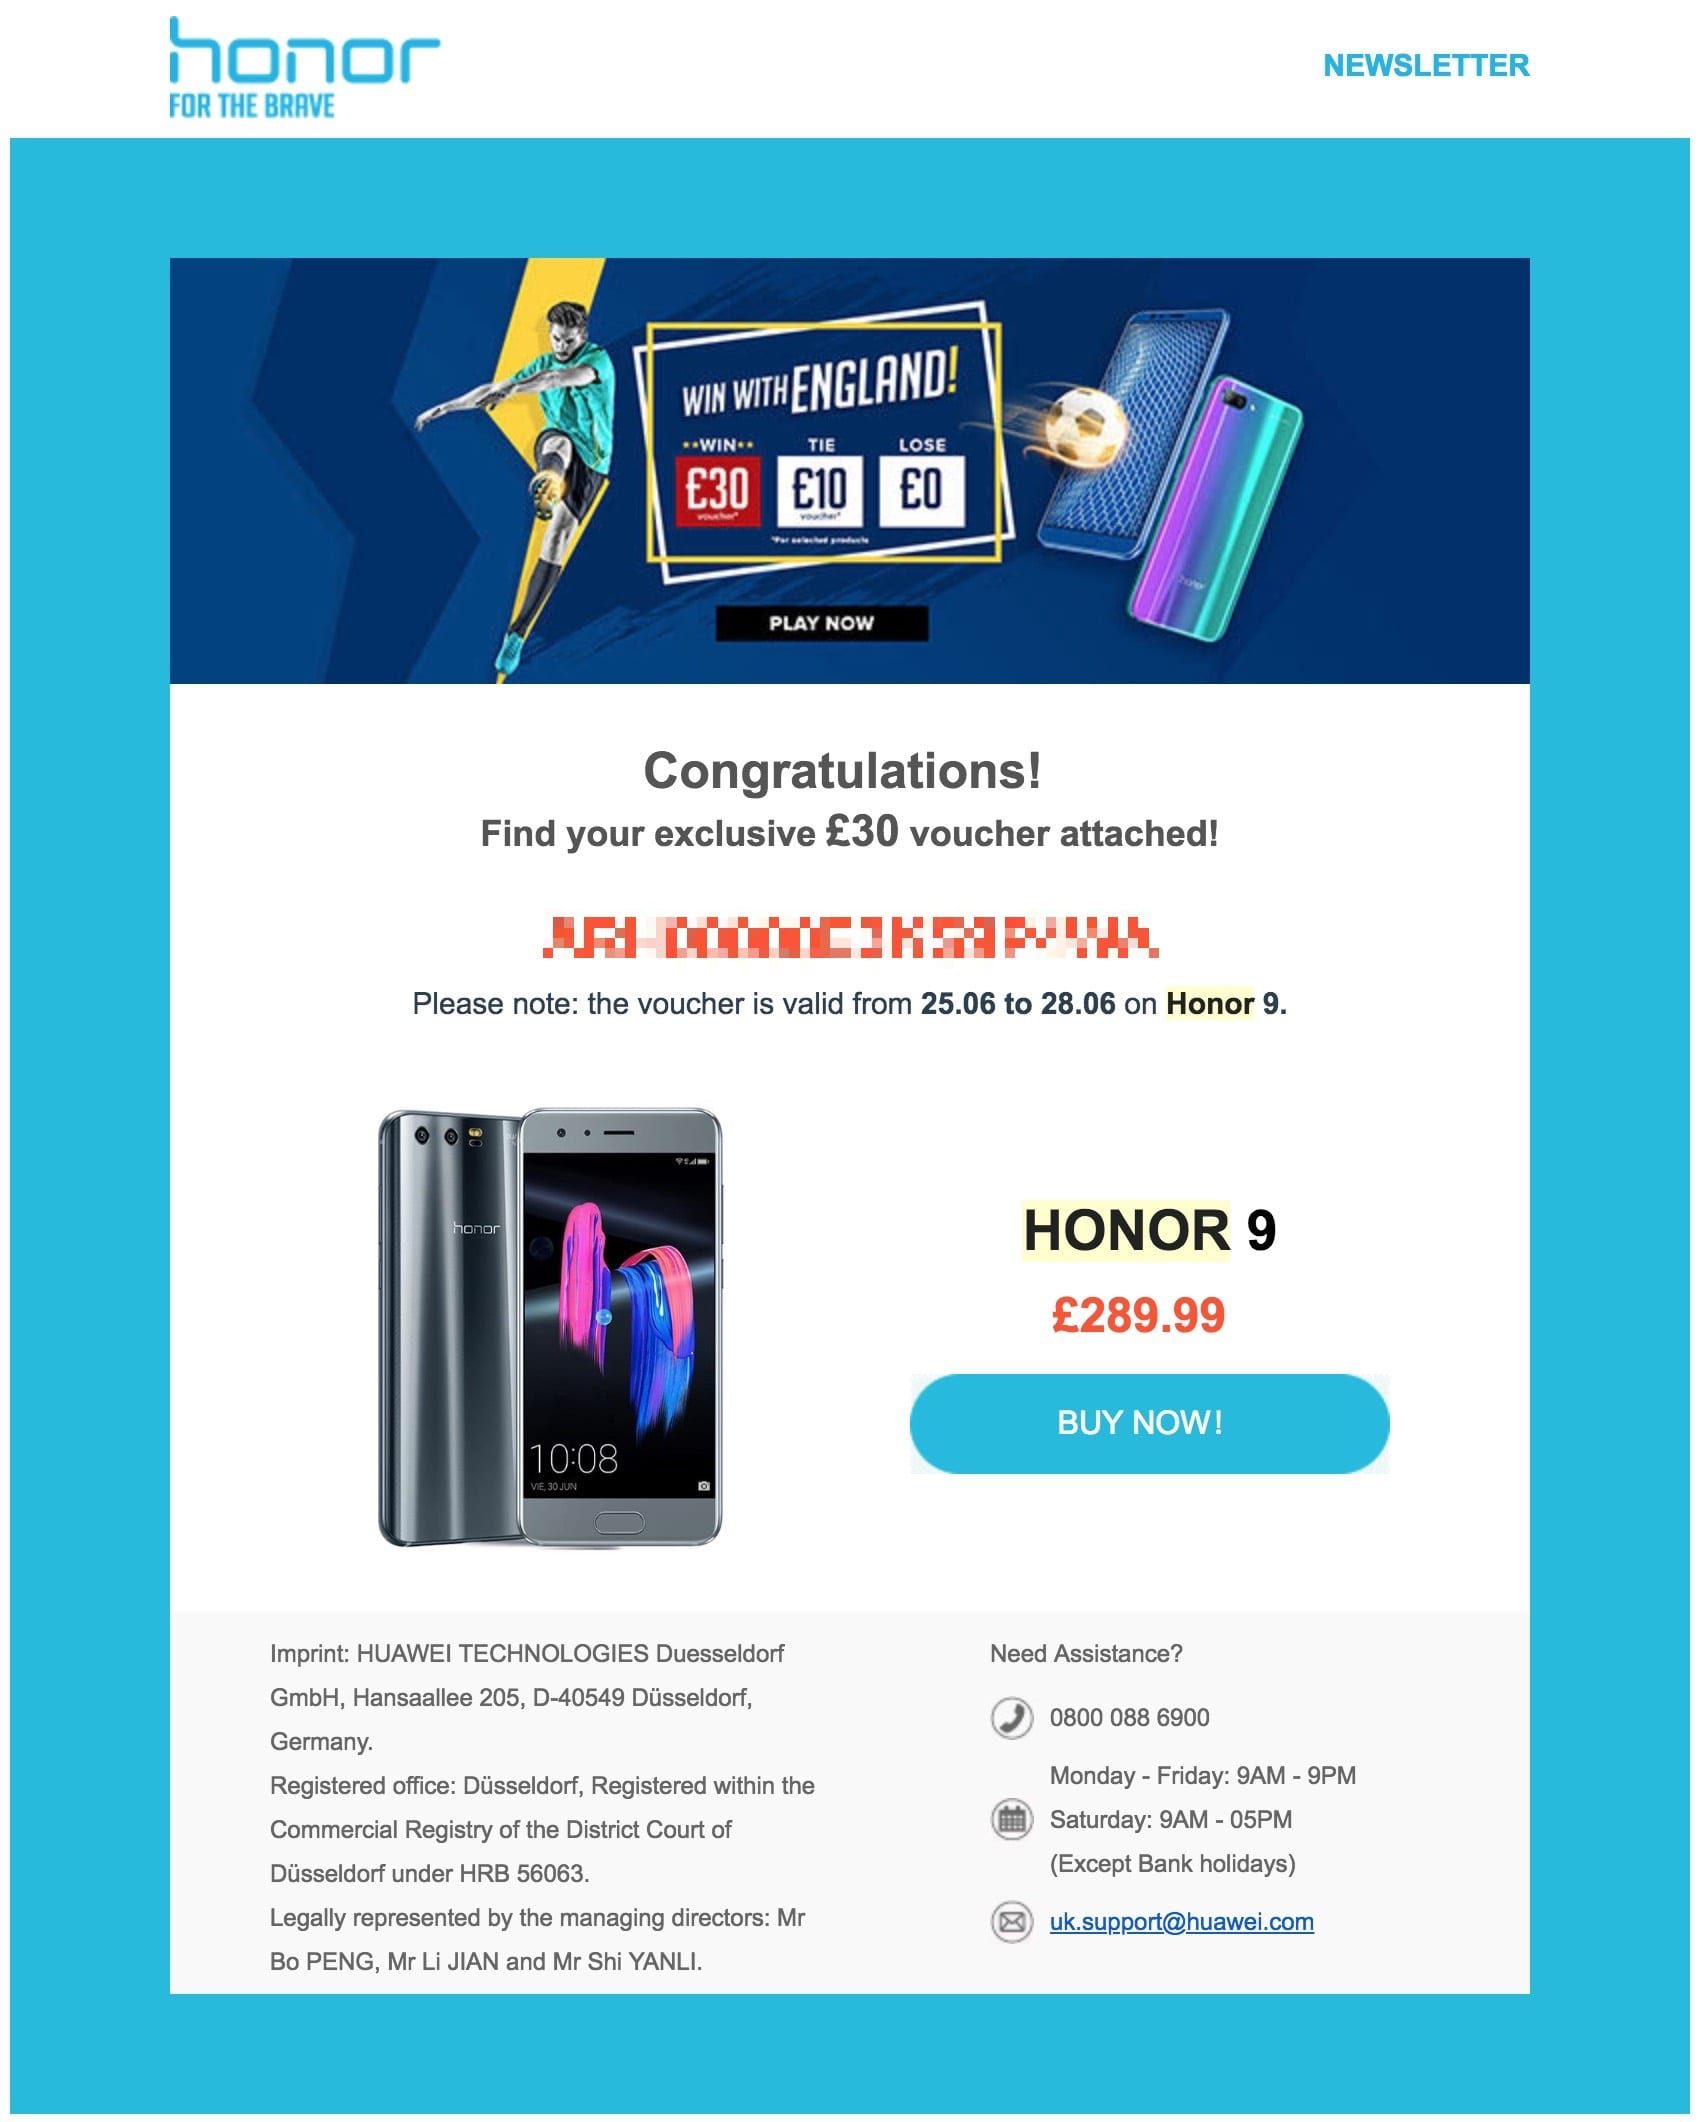 Honor World Cup voucher